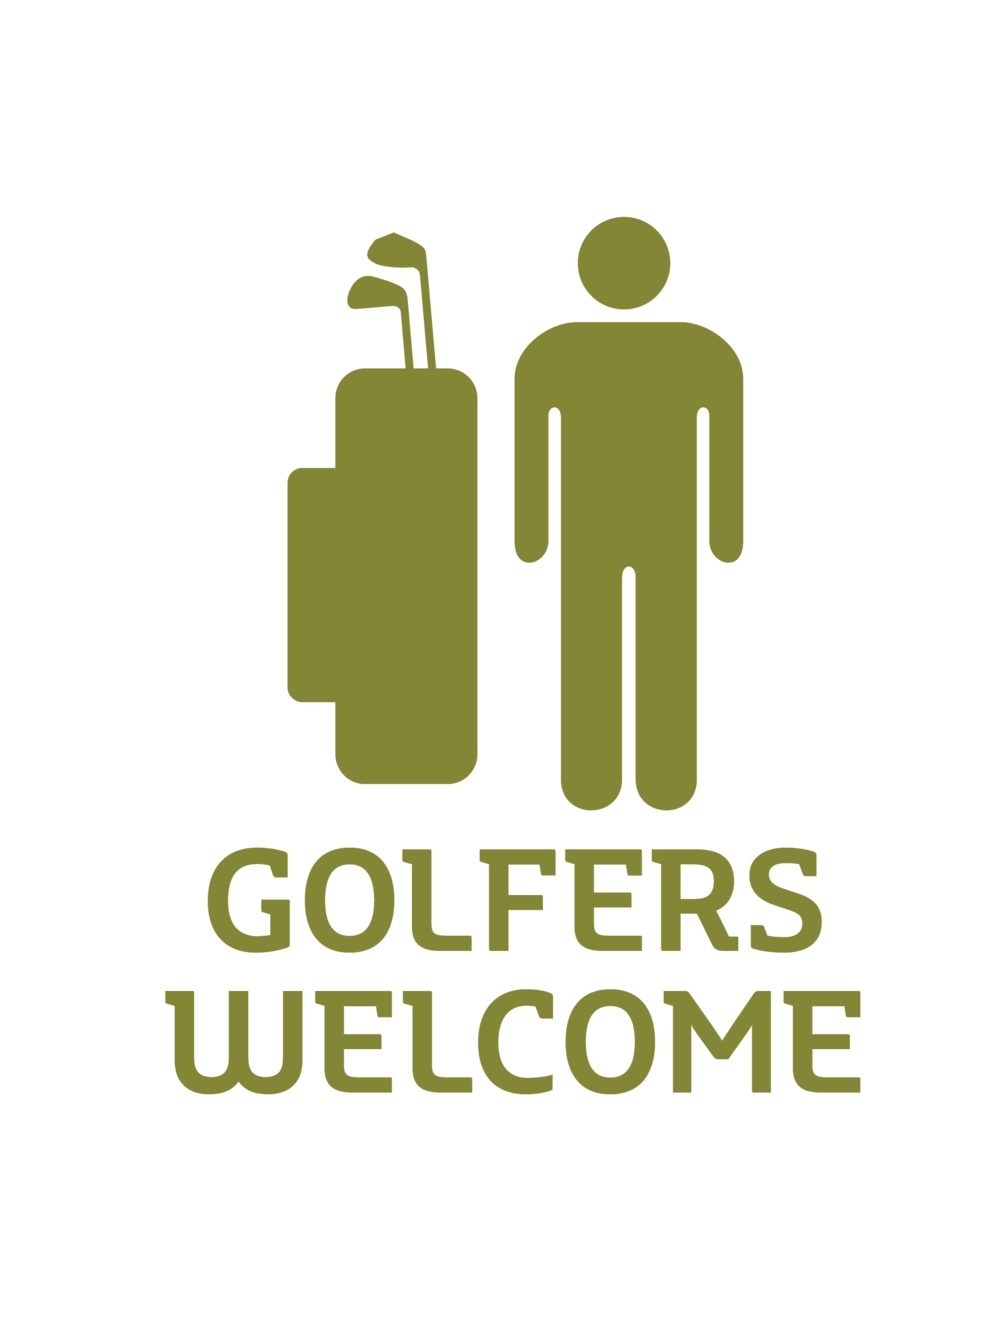 Golfers welcome.jpg